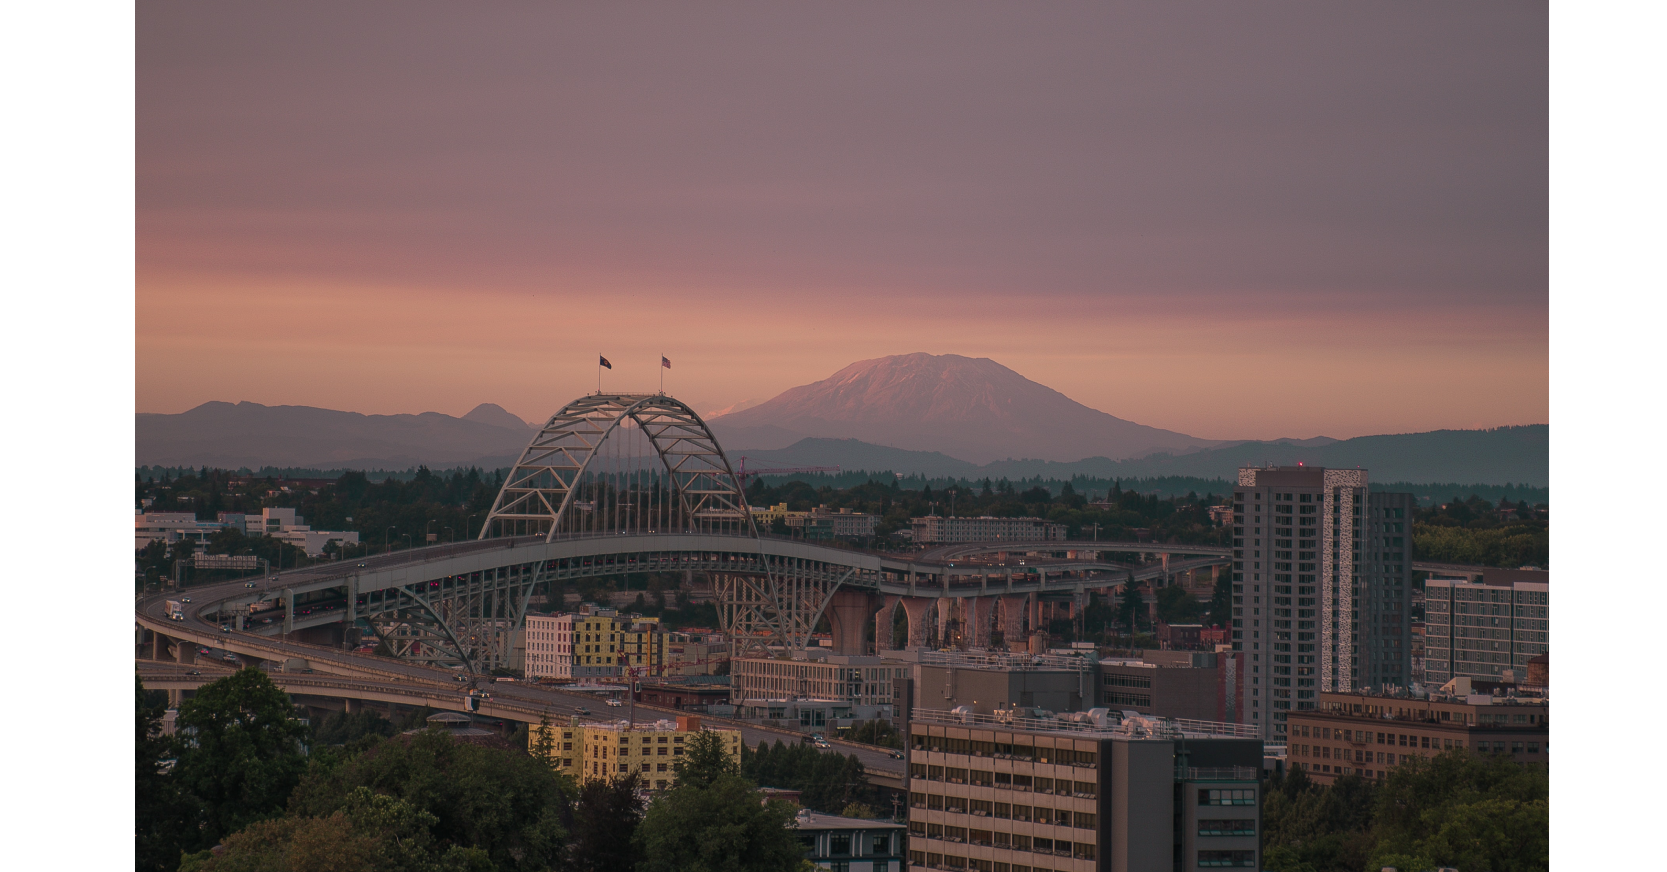 Image of bridge in Portland with Mt Saint Helens in the background